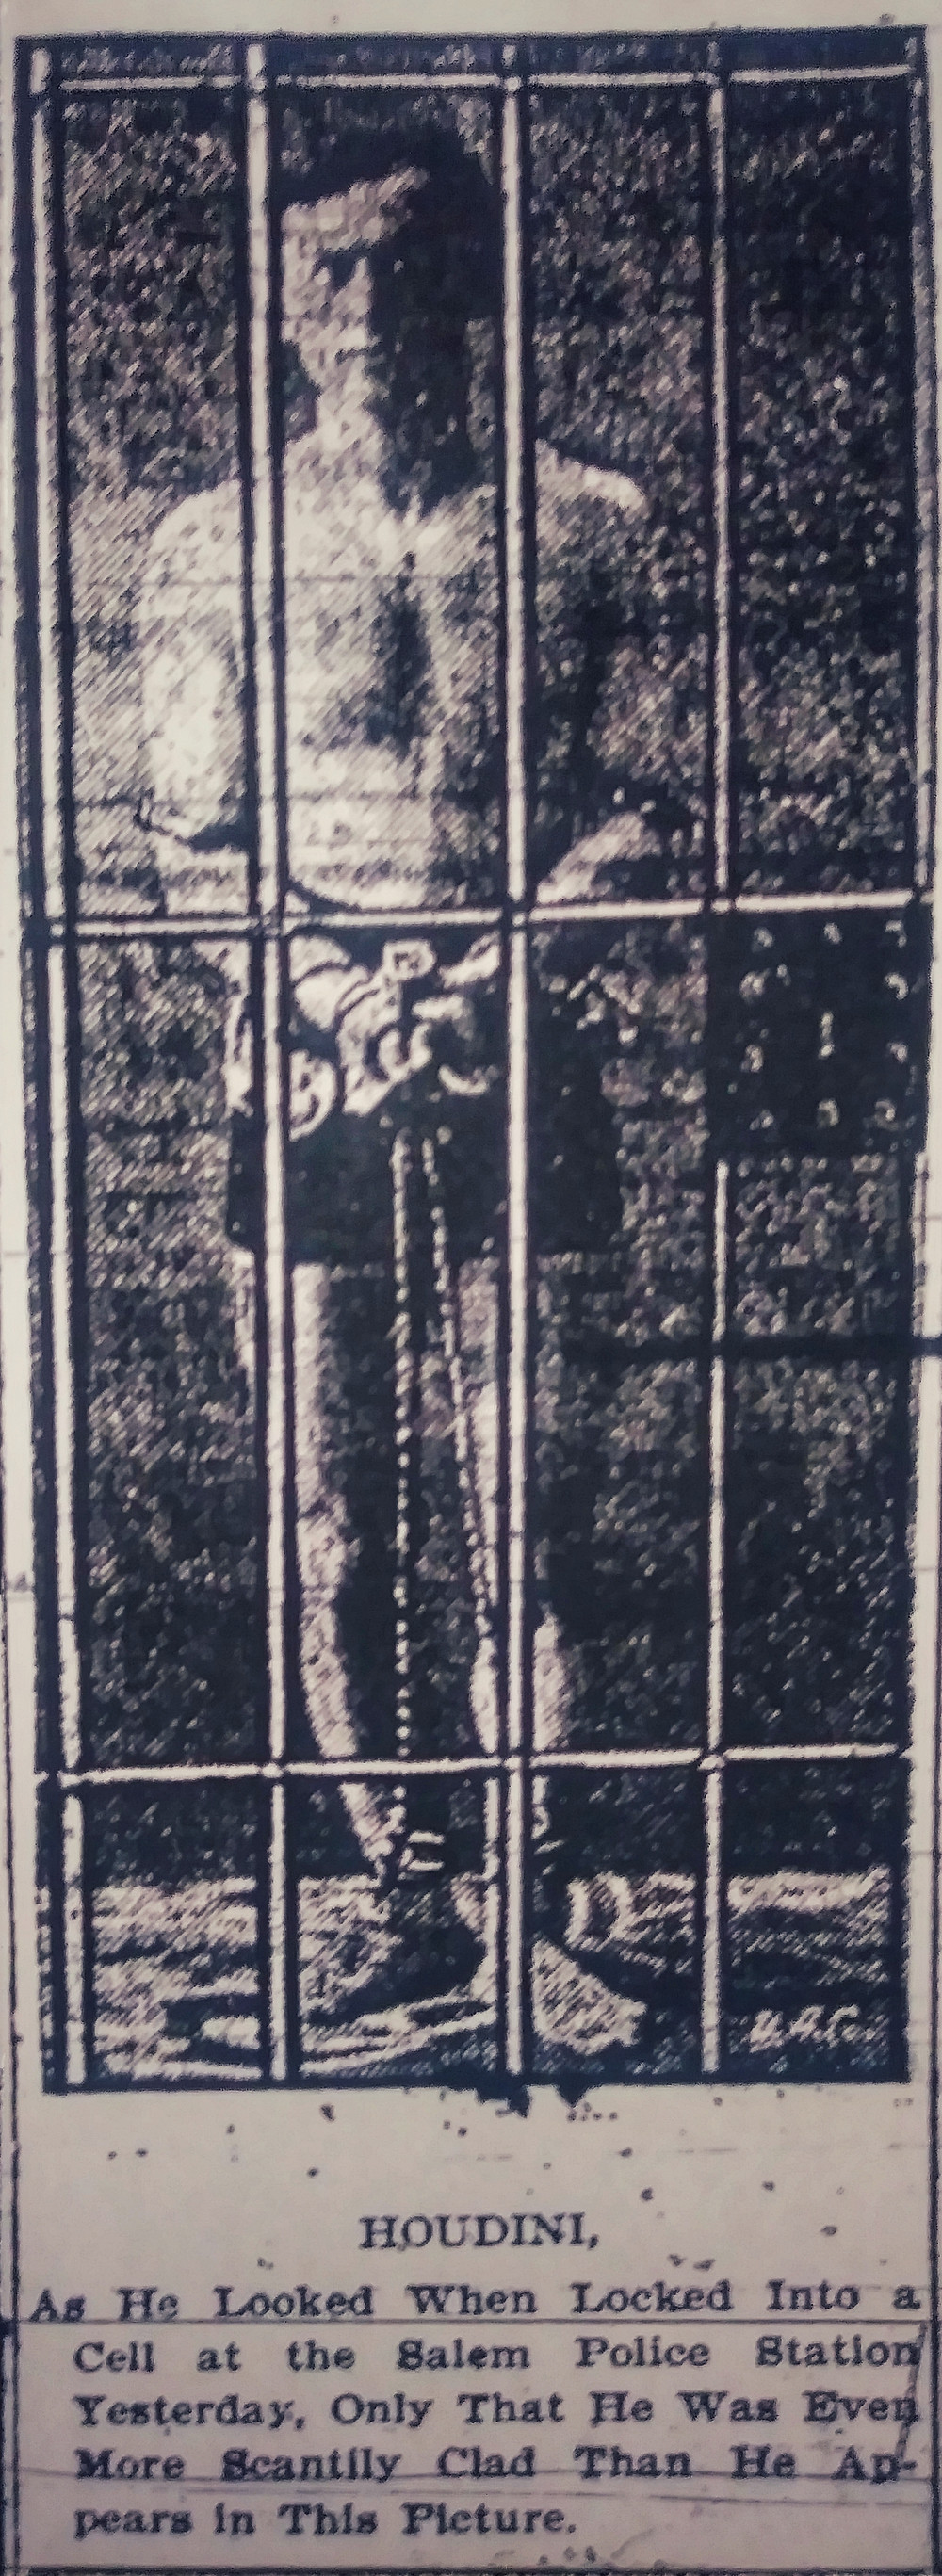 Stock Image of Houdini from the April 17th Salem Evening News